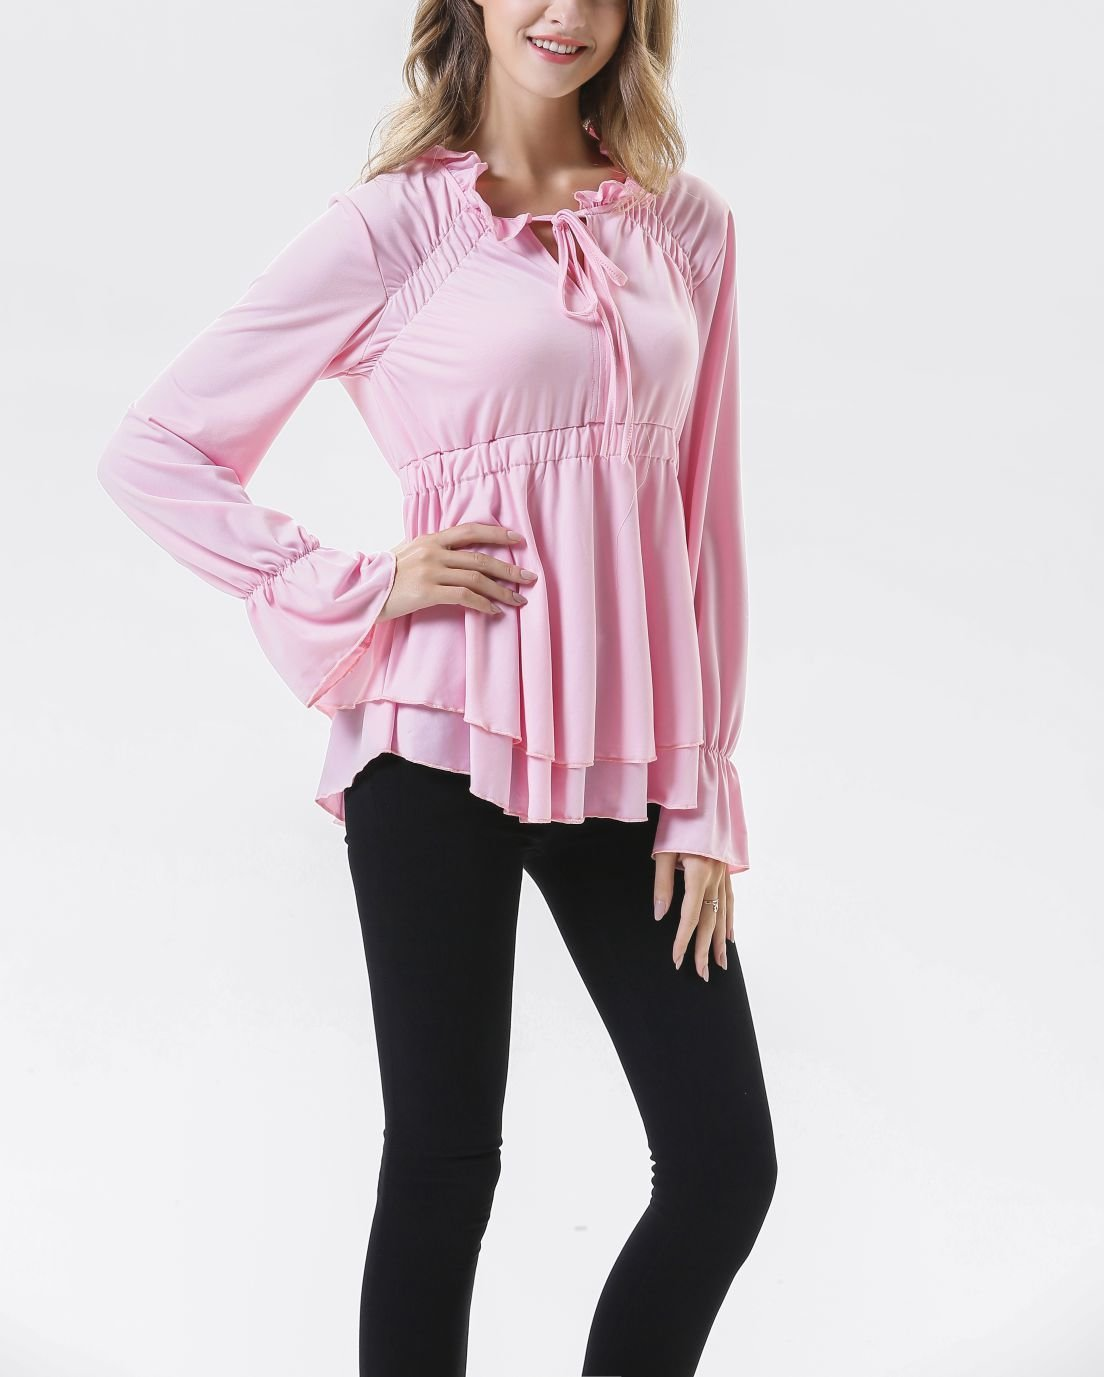 Ruffled Top with Tied Collar